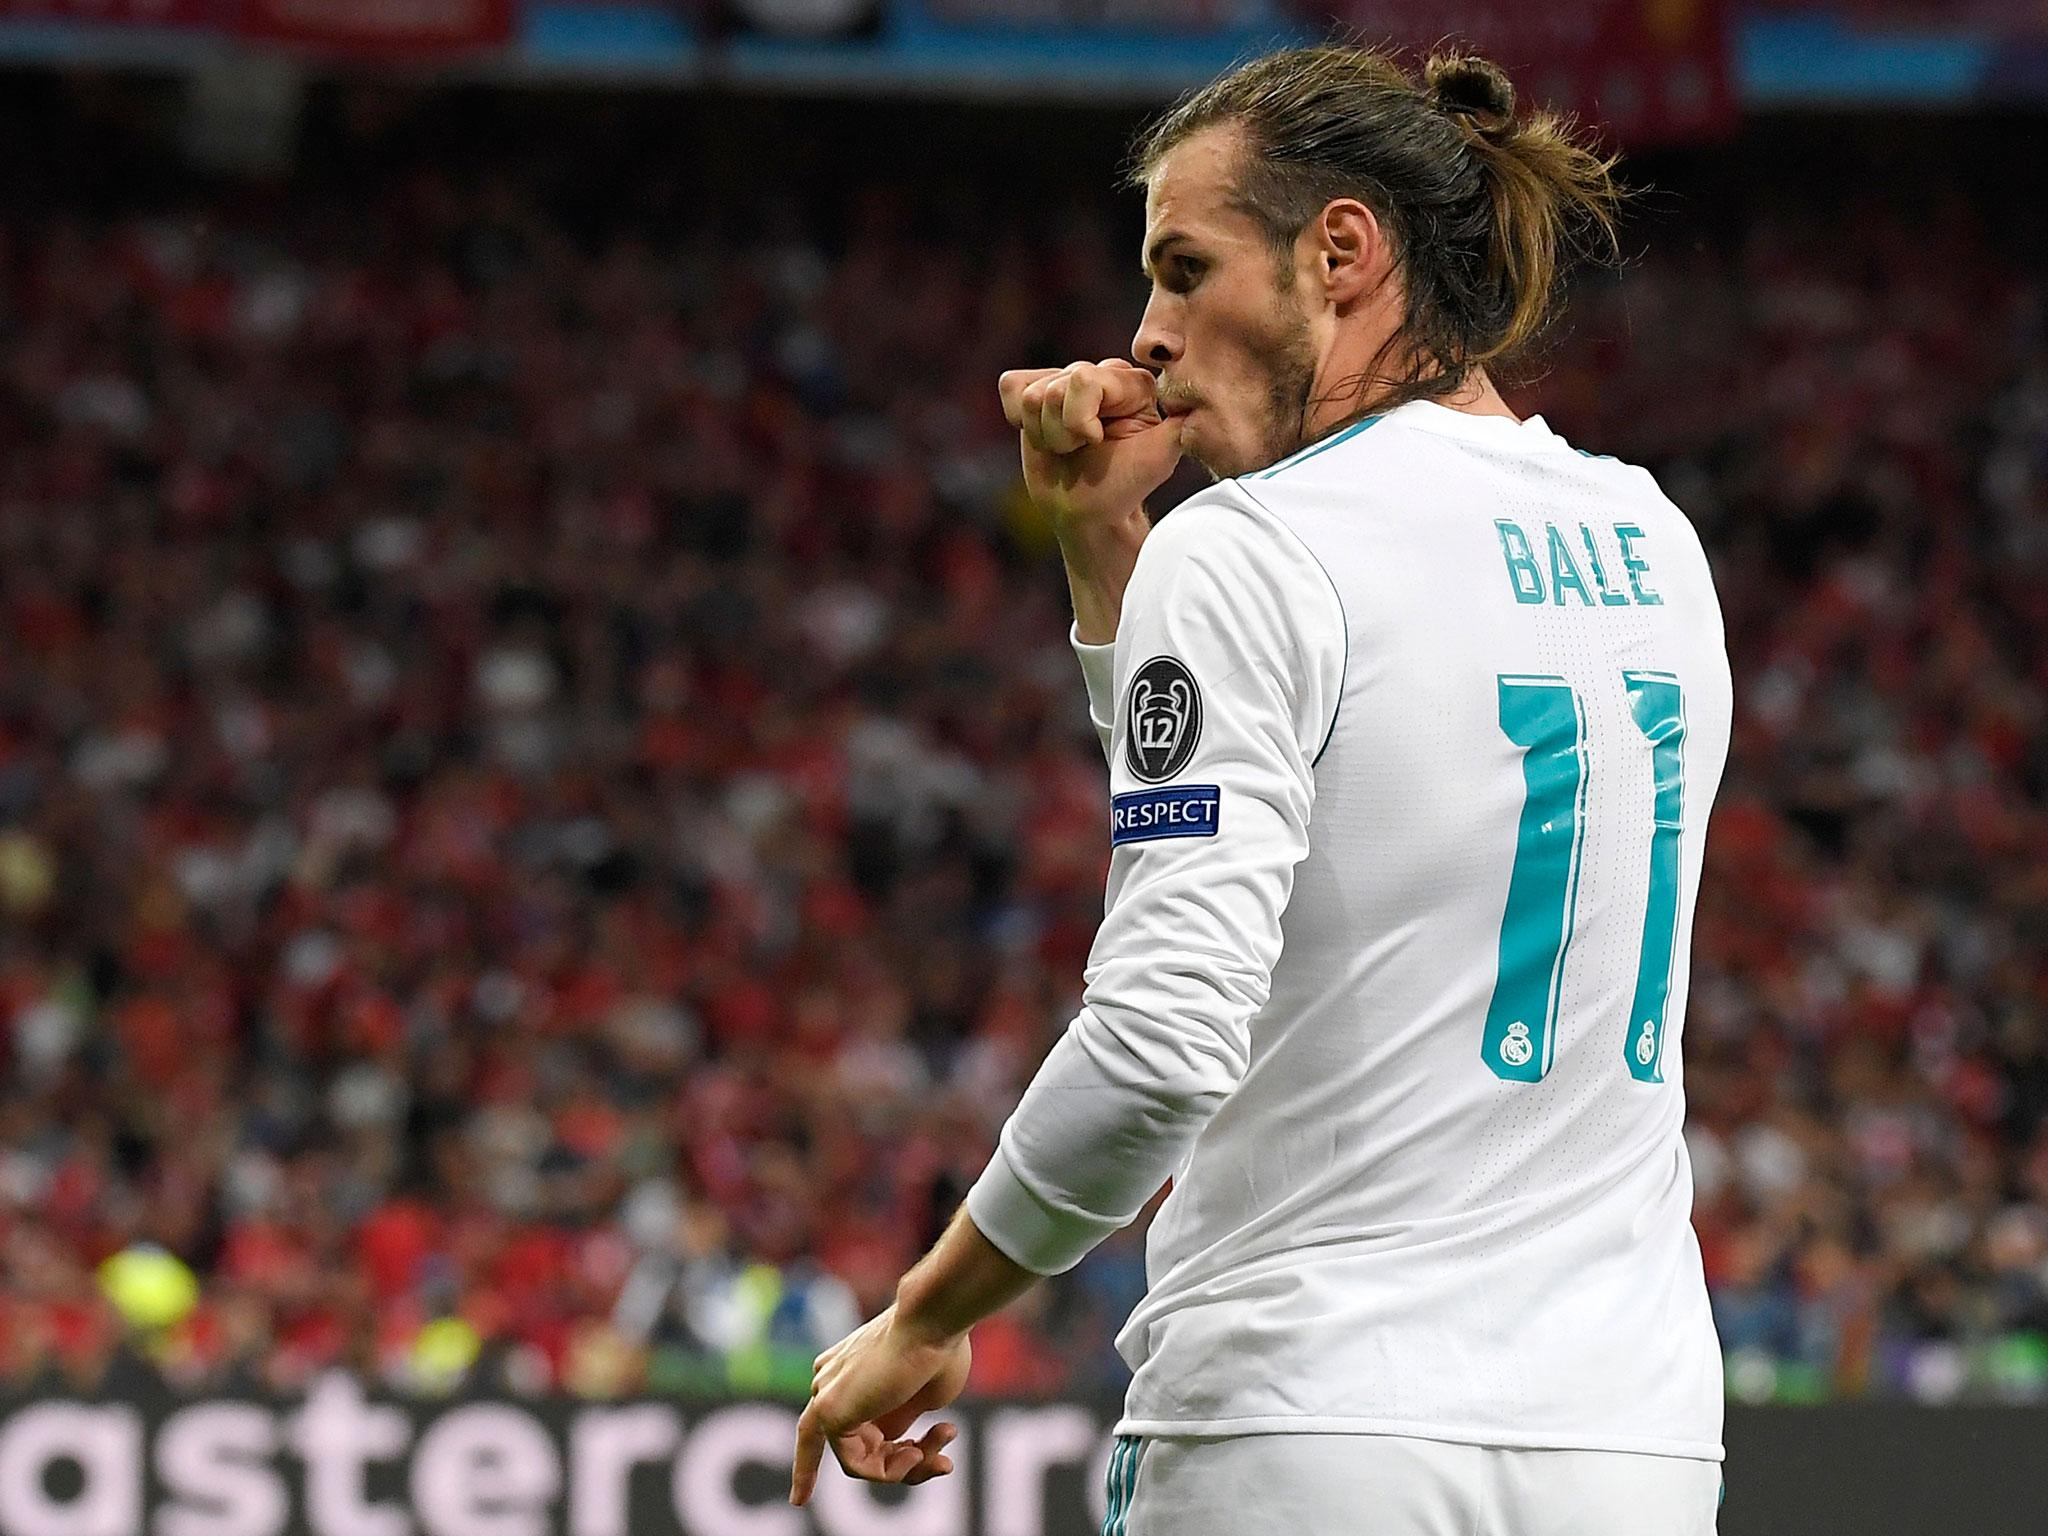 Gareth Bale to wait for new Real Madrid boss before deciding future but could stay if Manchester United don't move